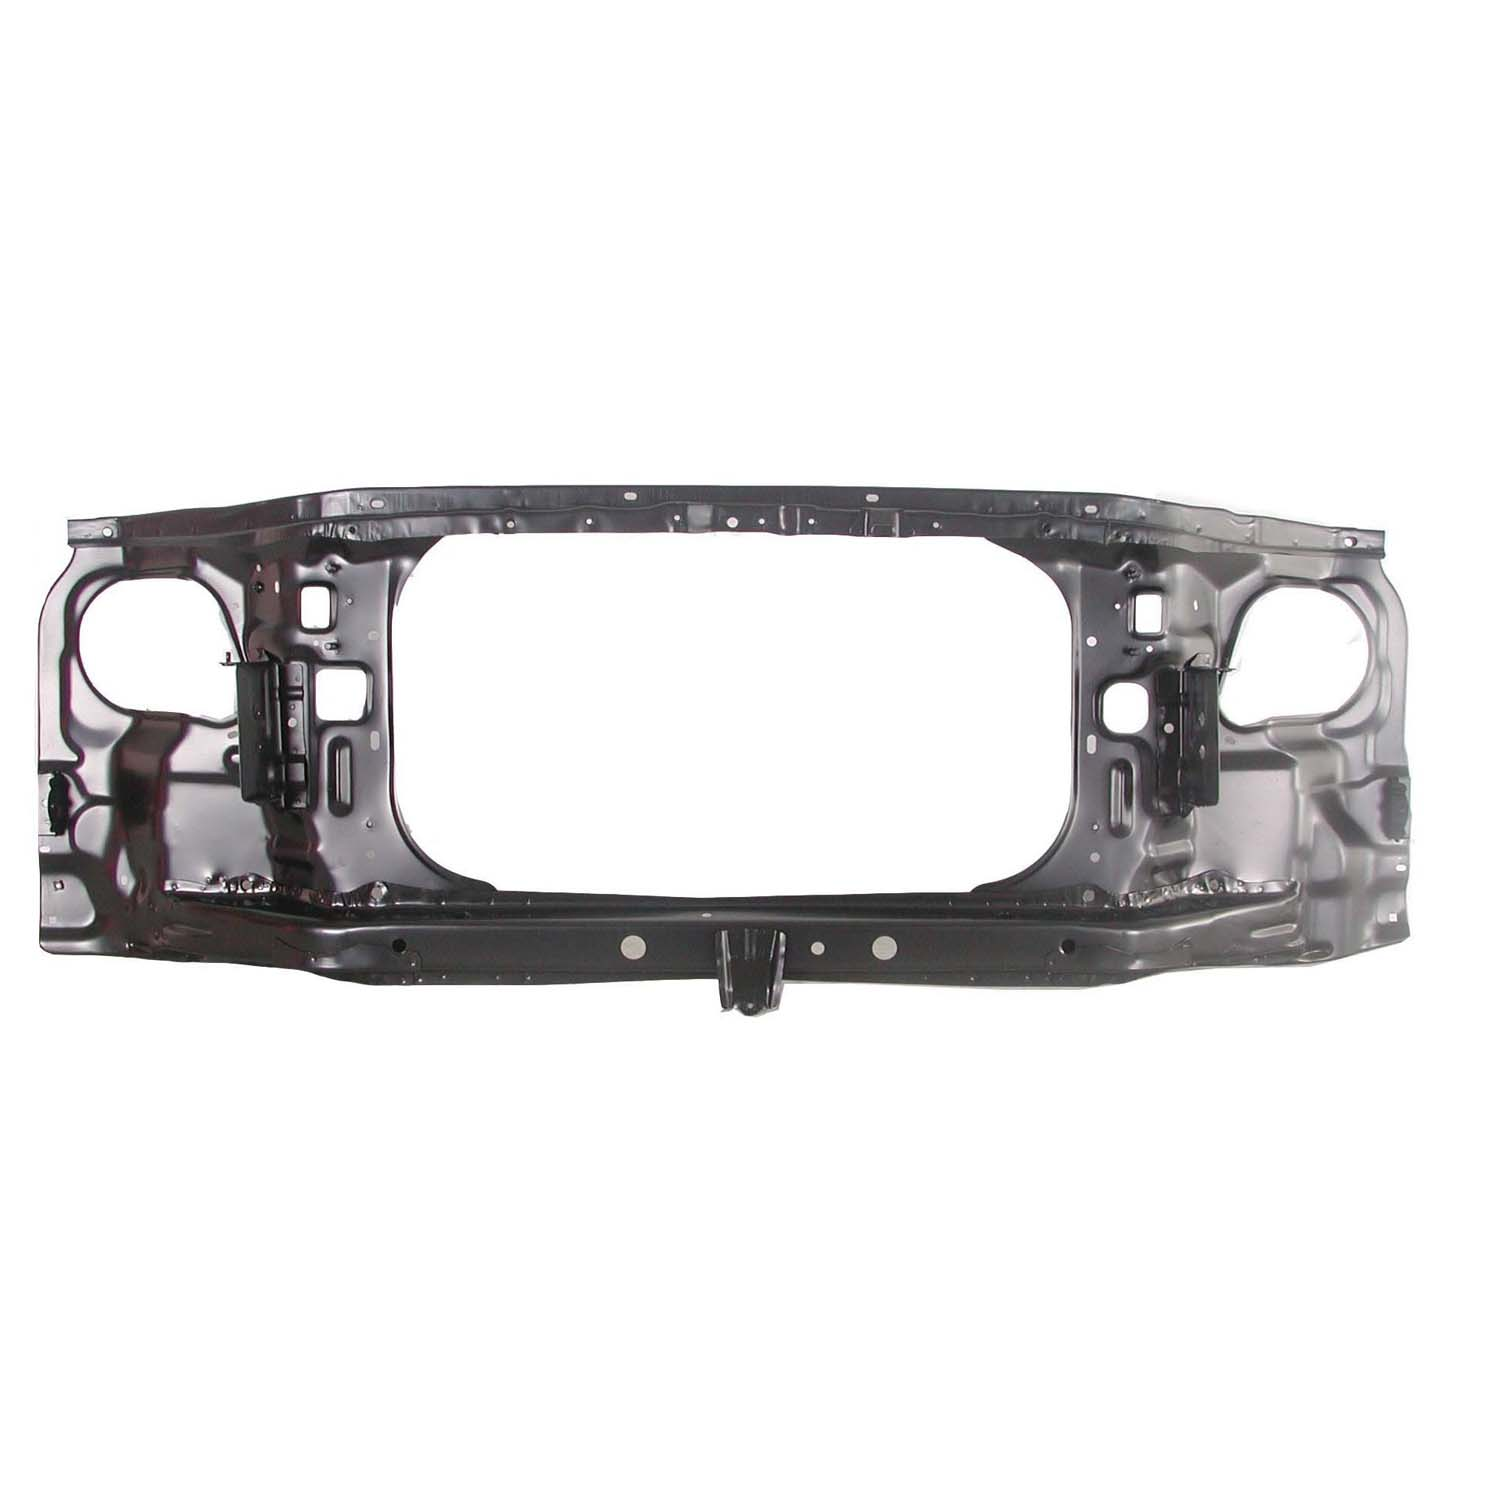 For Toyota Sequoia 2001-2004 Replace Radiator Support